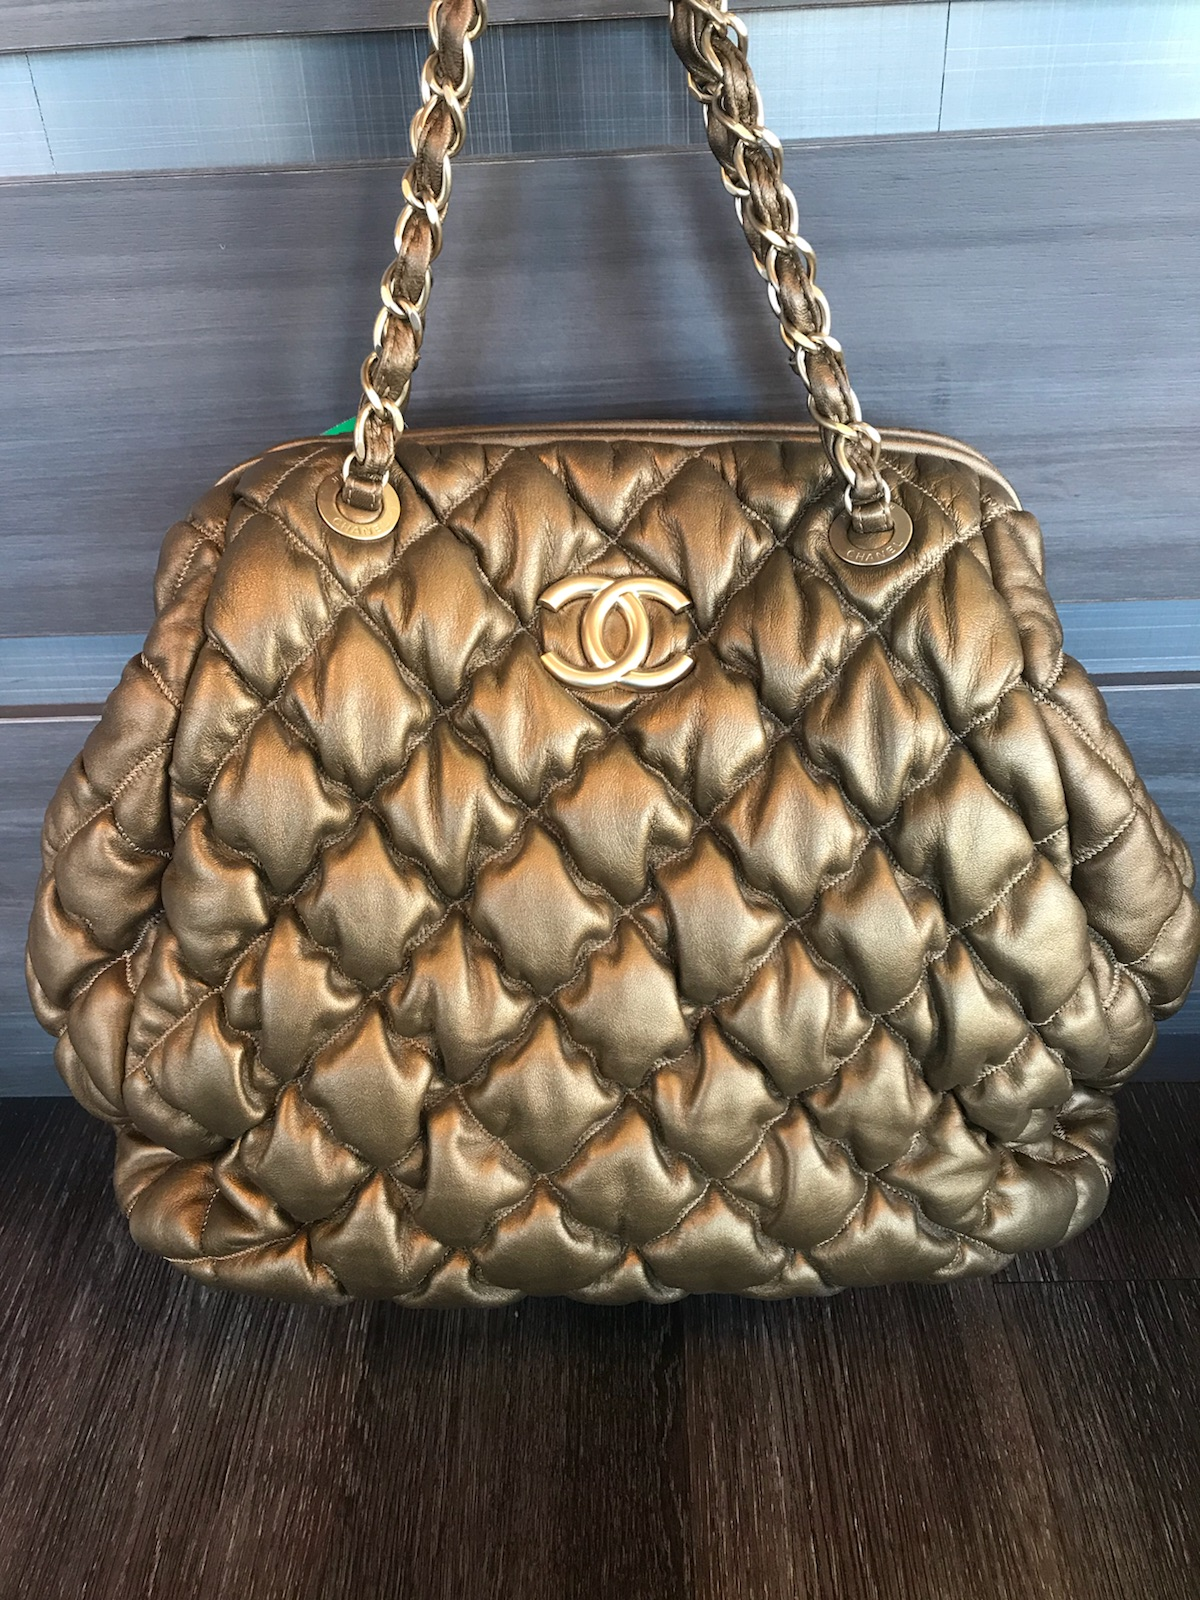 chanel Purses, Handbags Price: $3199.99